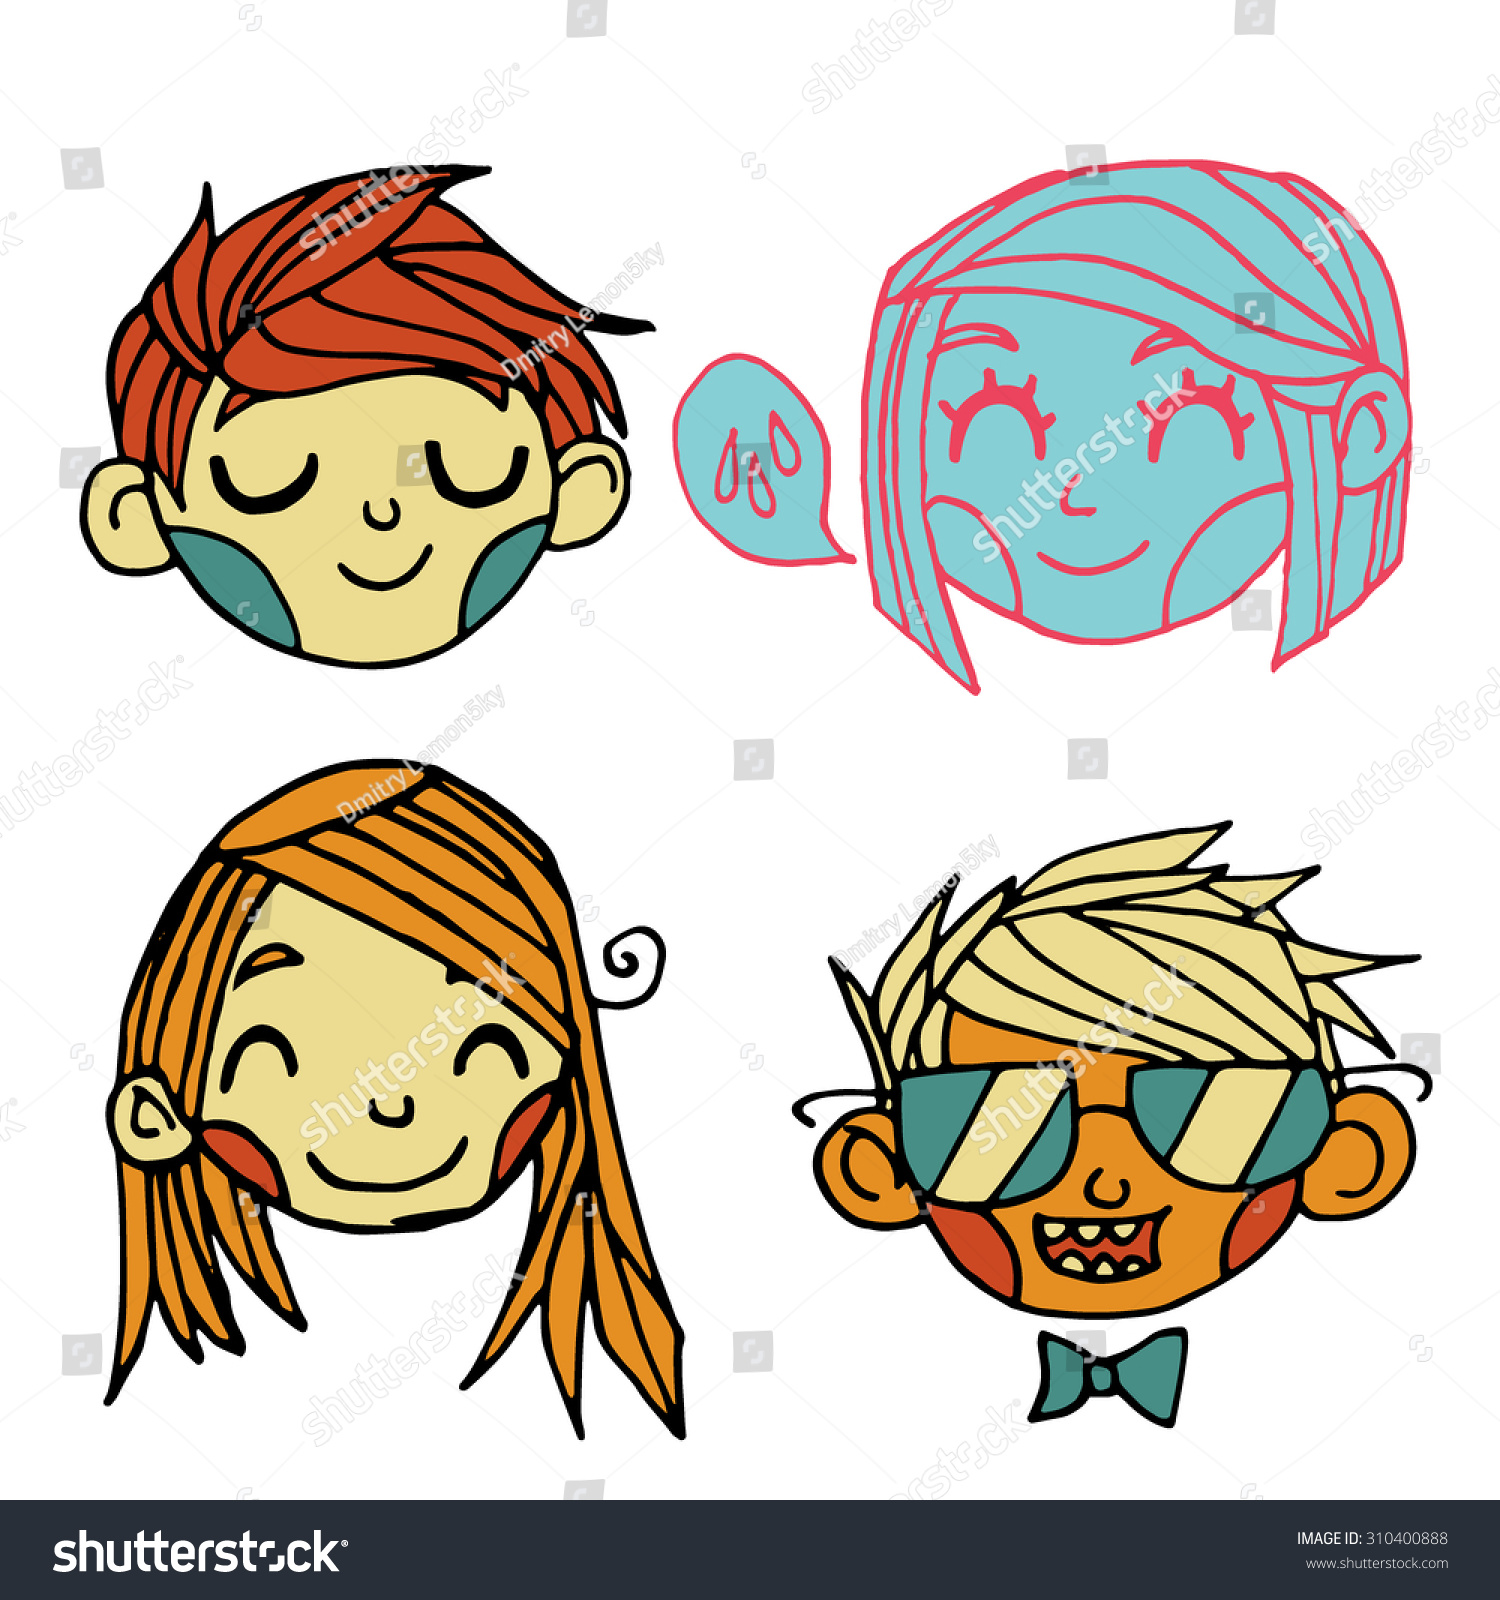 Vector cartoon flat cute faces set stock vector 310400888 - Cartoon wallpaper for tablet ...